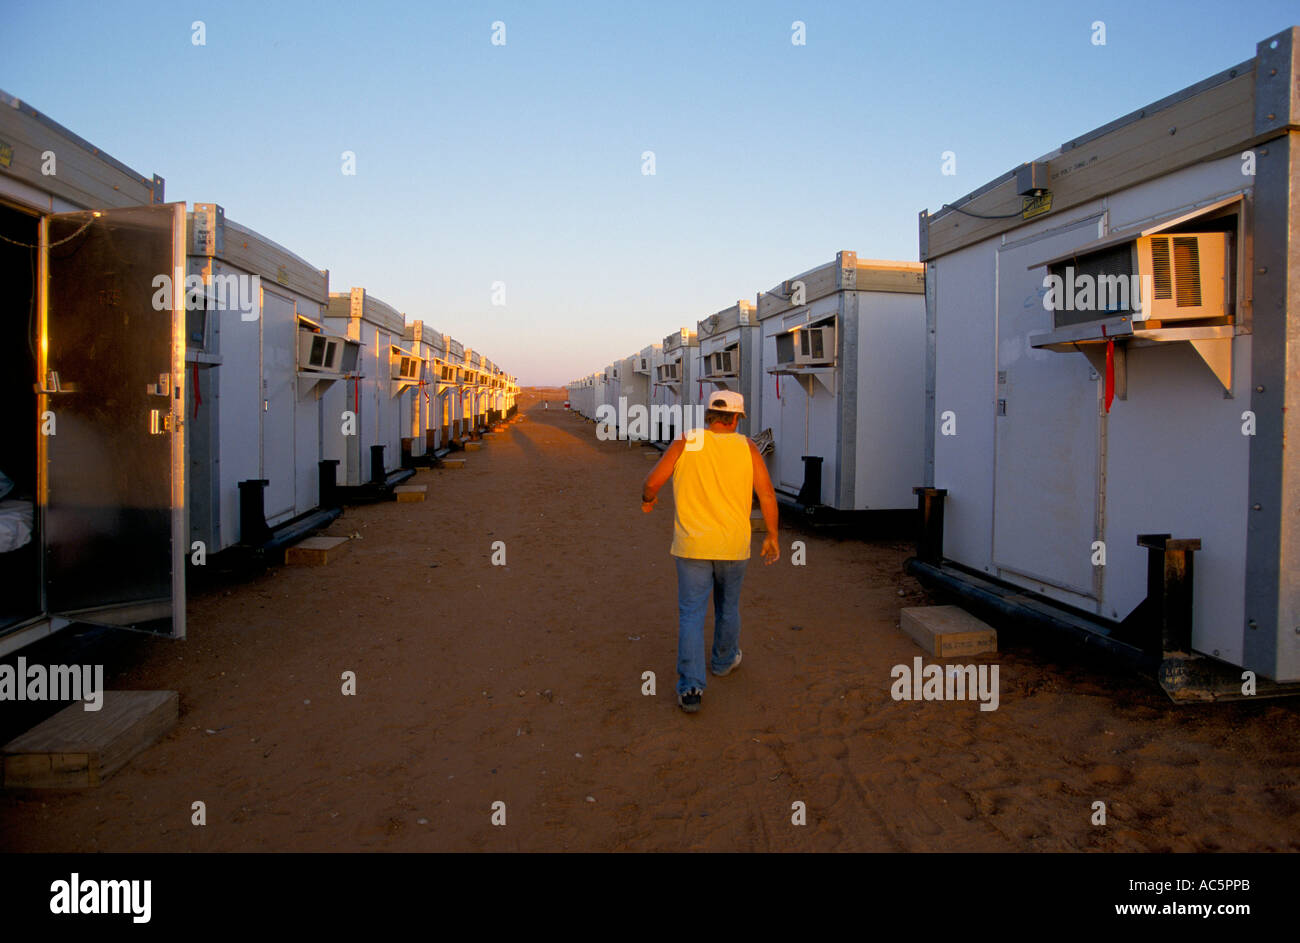 Mobile Homes Workers Camp Stock Photos & Mobile Homes Workers Camp